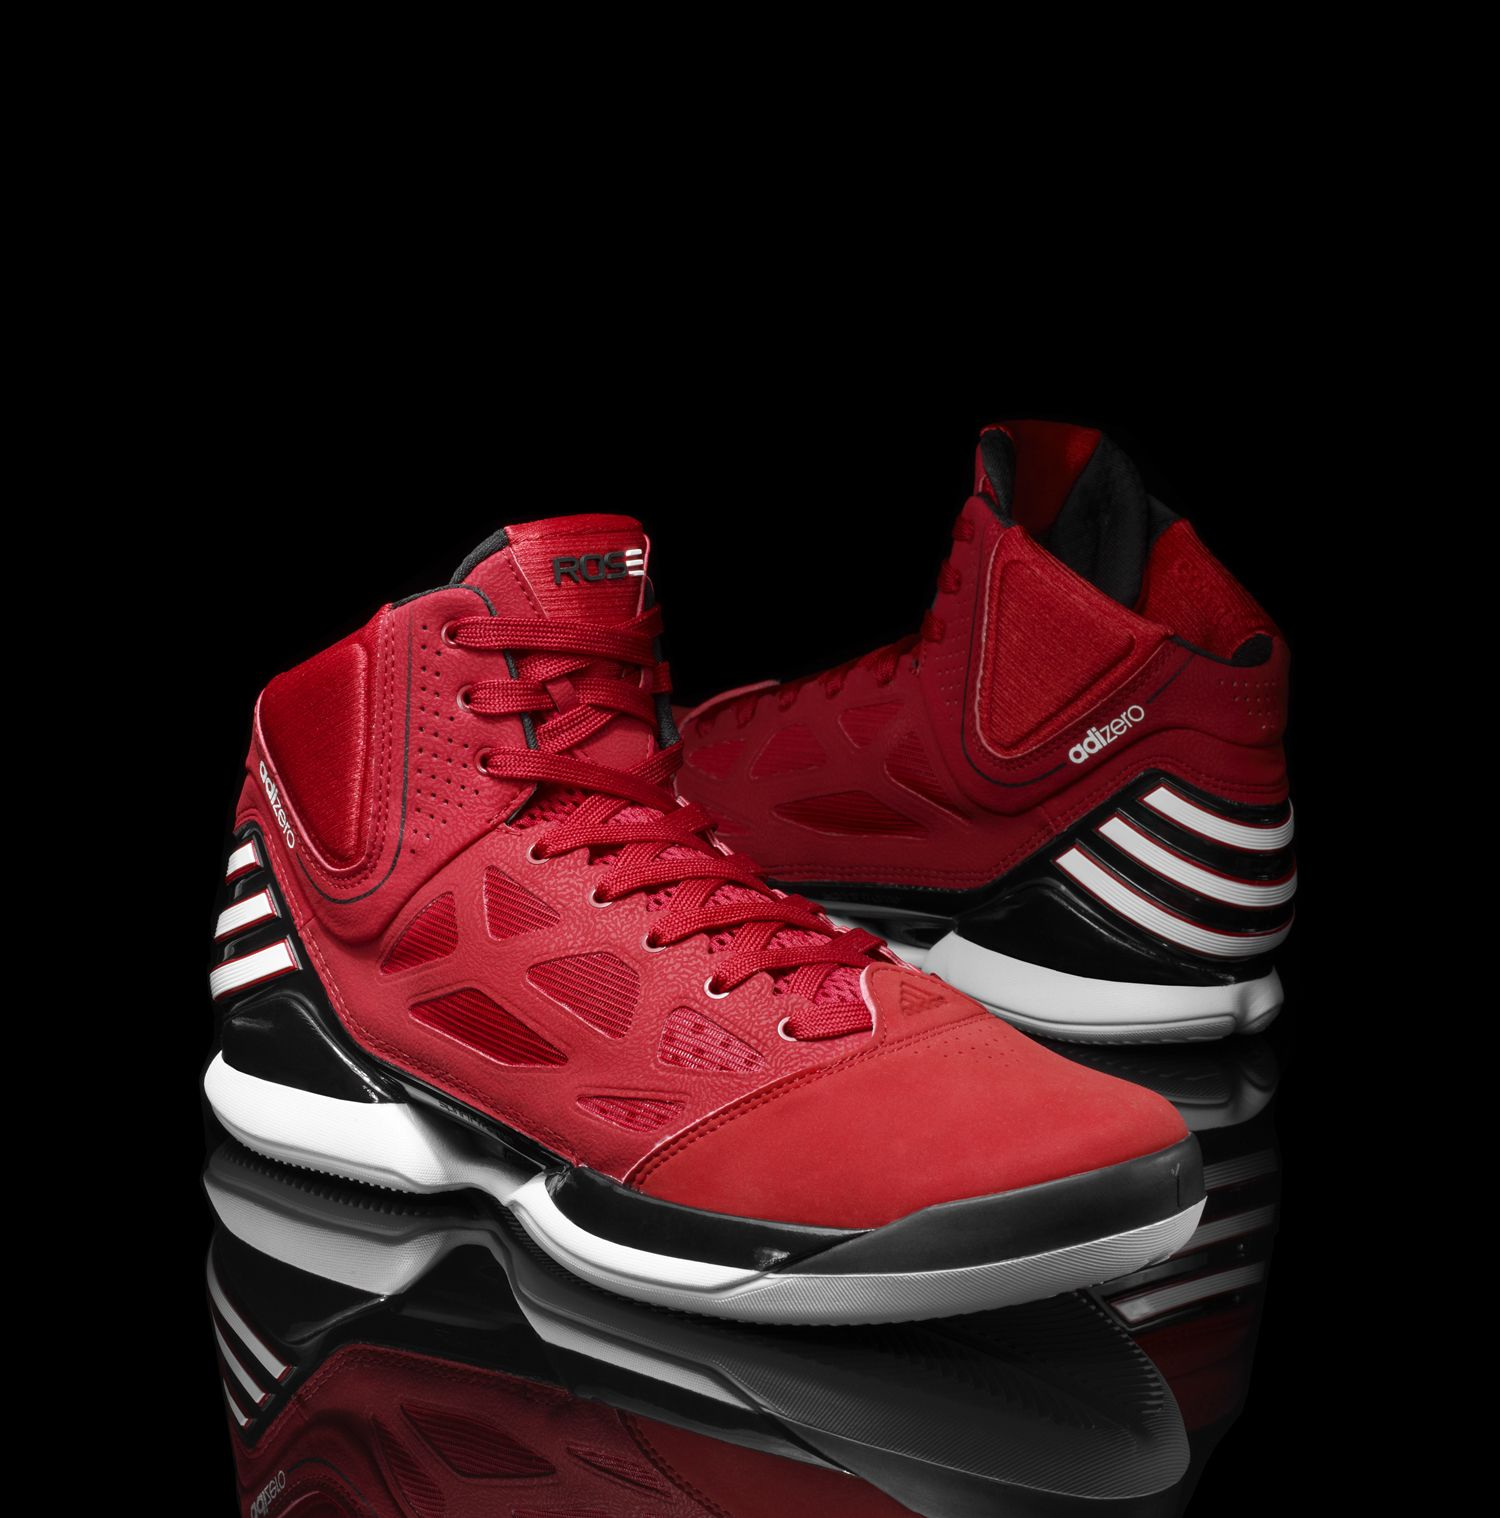 Adidas Basketball Shoes D Rose 2